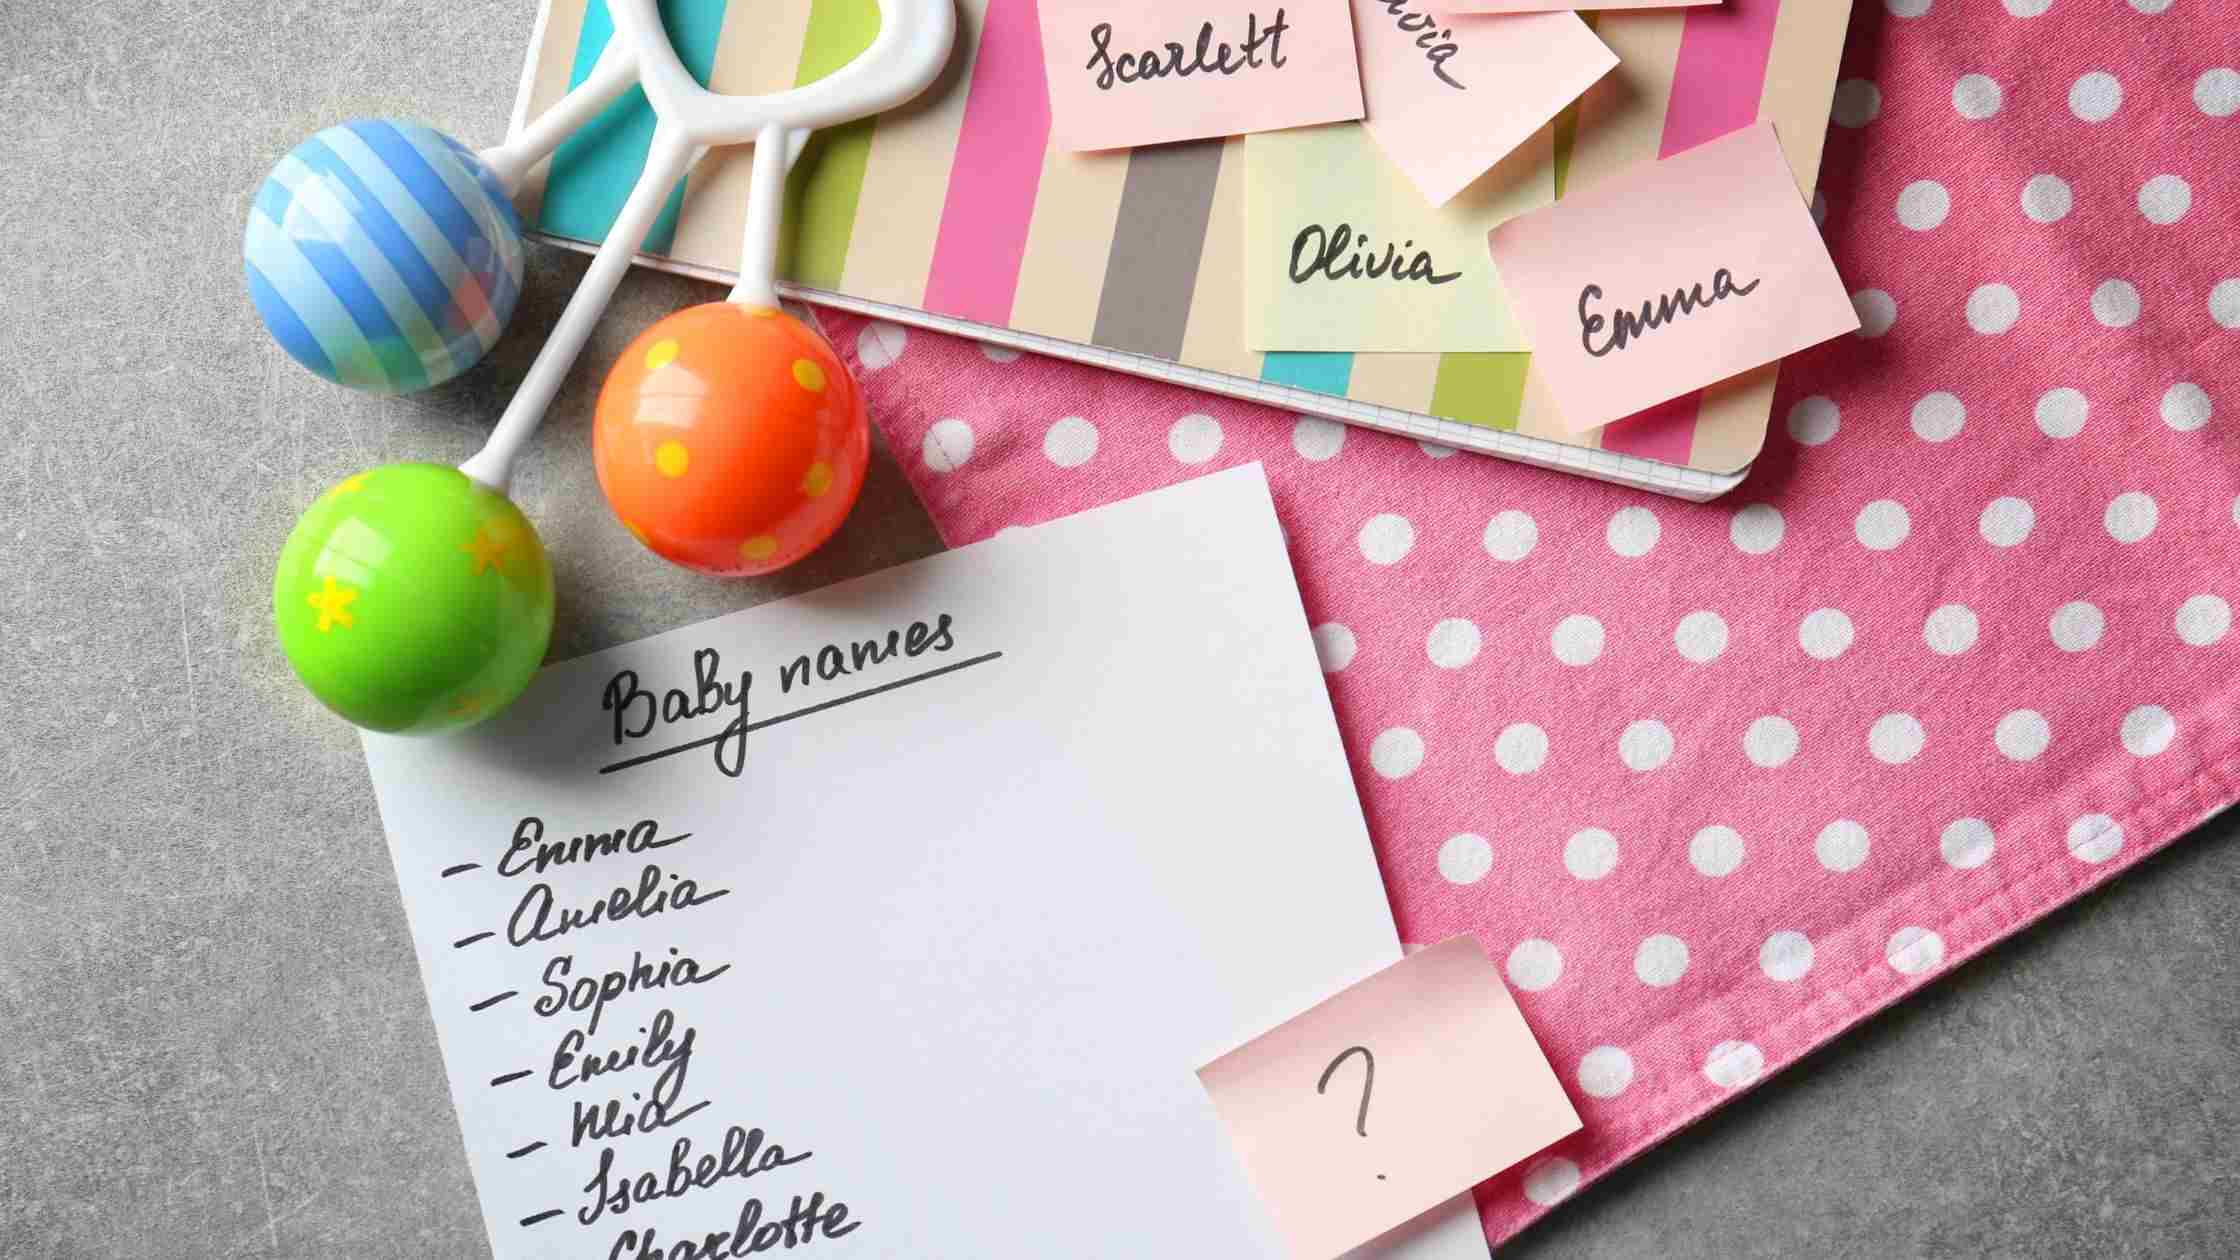 Baby Name Meanings - SupermomGlobal